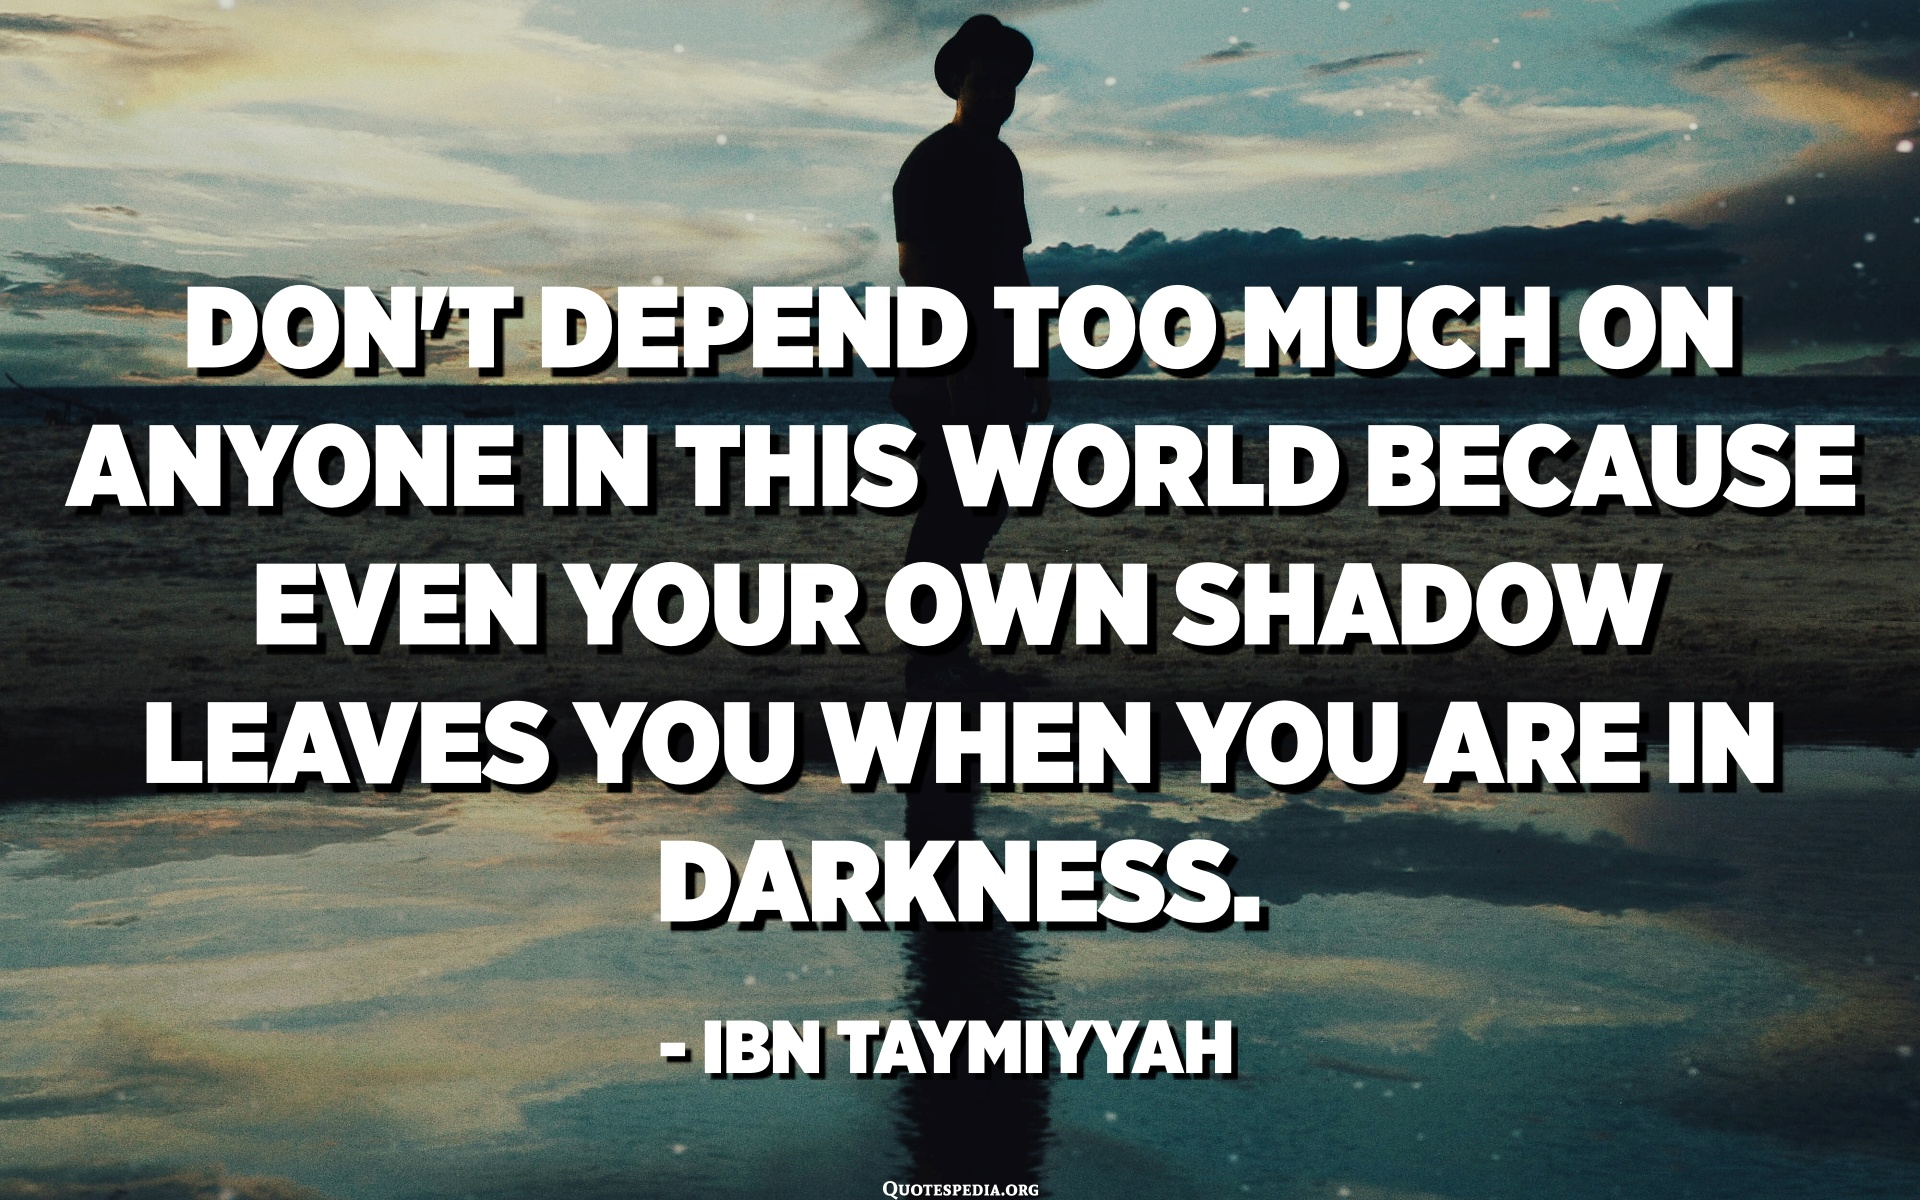 Don T Depend Too Much On Anyone In This World Because Even Your Own Shadow Leaves You When You Are In Darkness Ibn Taymiyyah Quotes Pedia